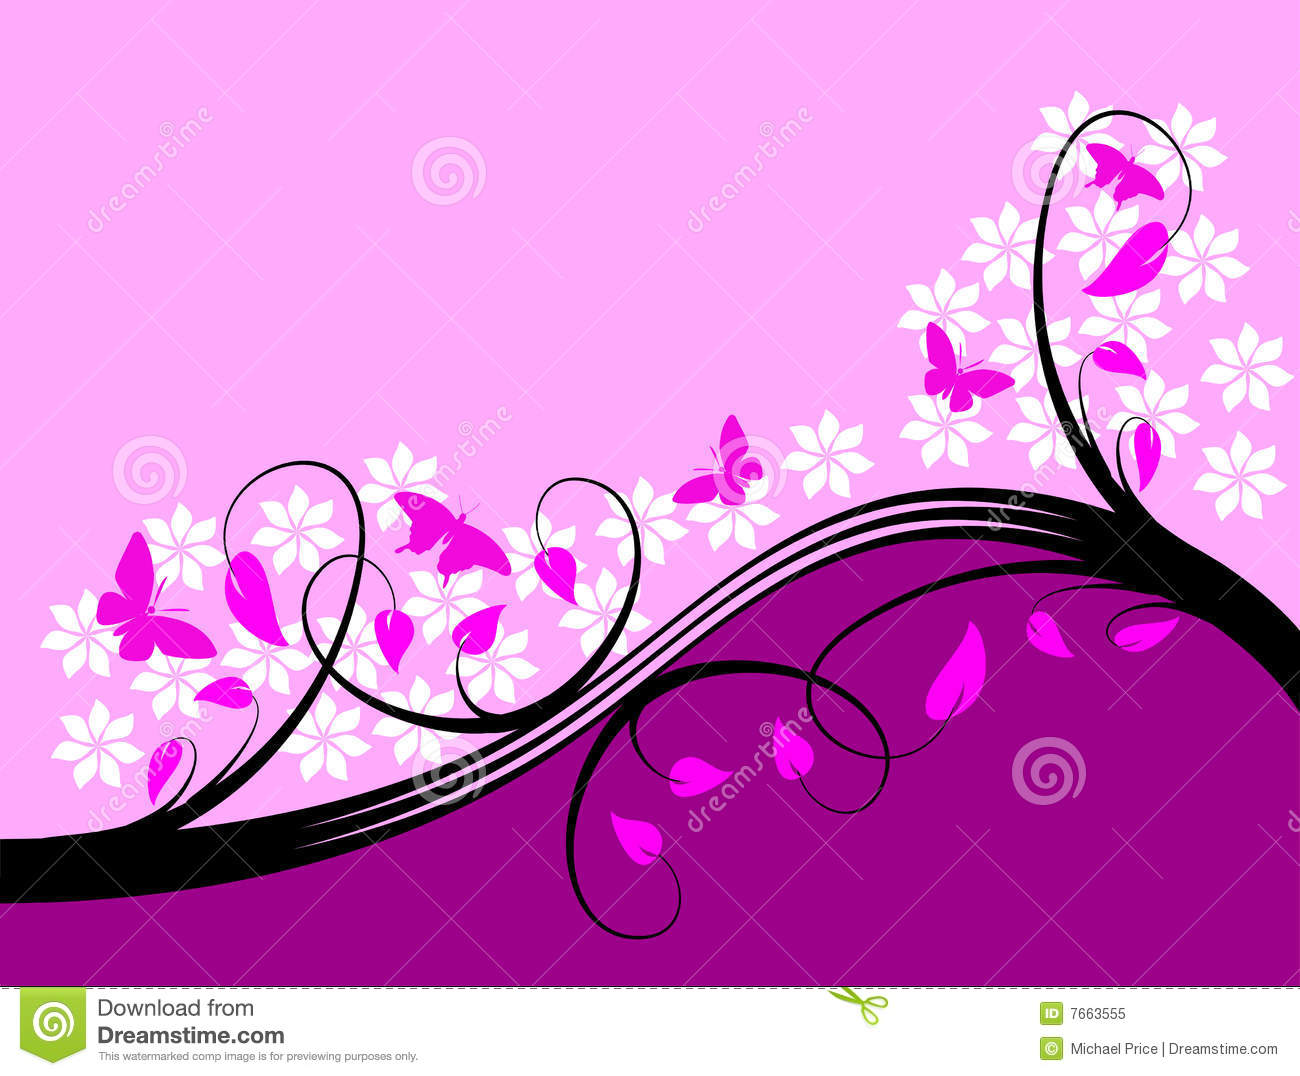 Purple Floral Background Design Royalty Free Stock Photo